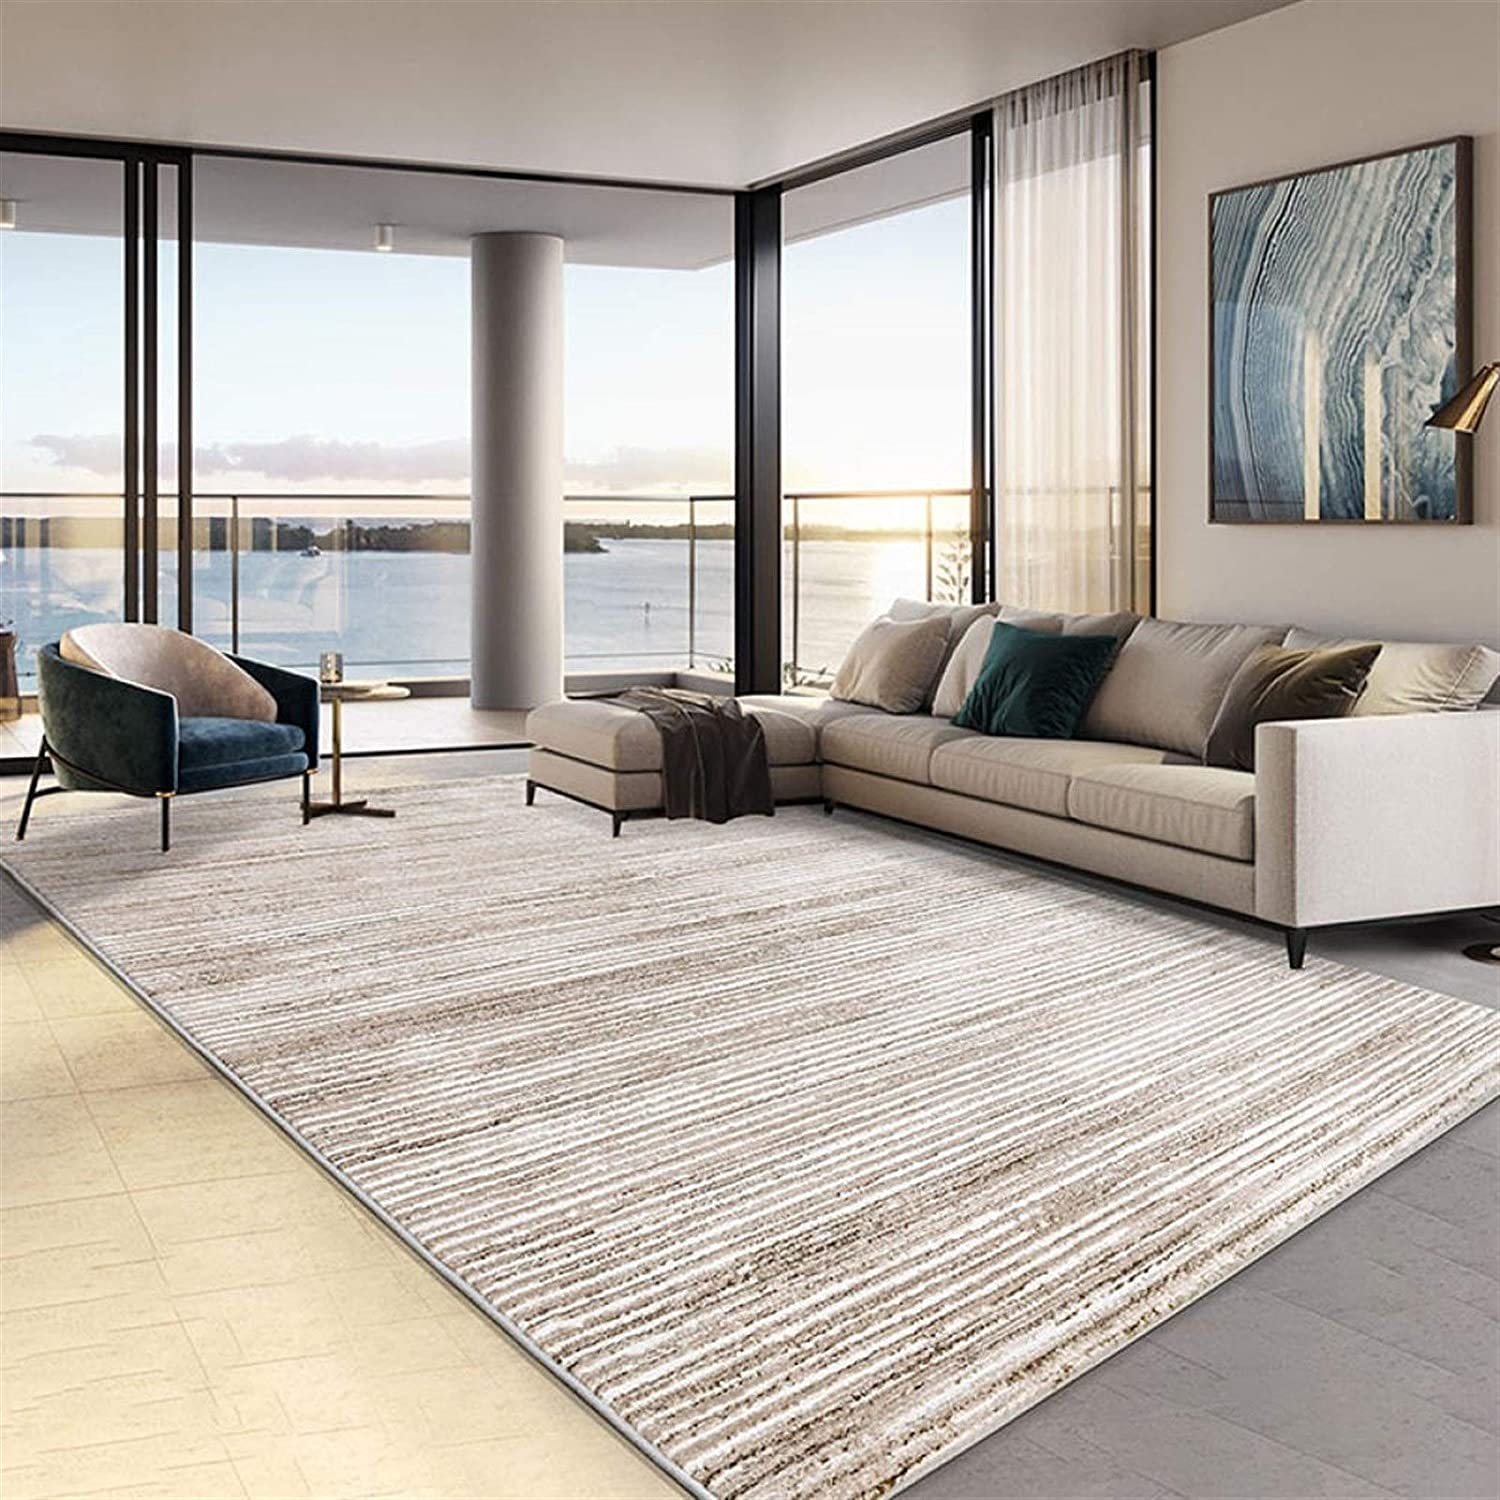 Wuyuana Carpet OFFicial site Sofa Coffee Table Room Bedr Now free shipping Living Cushion